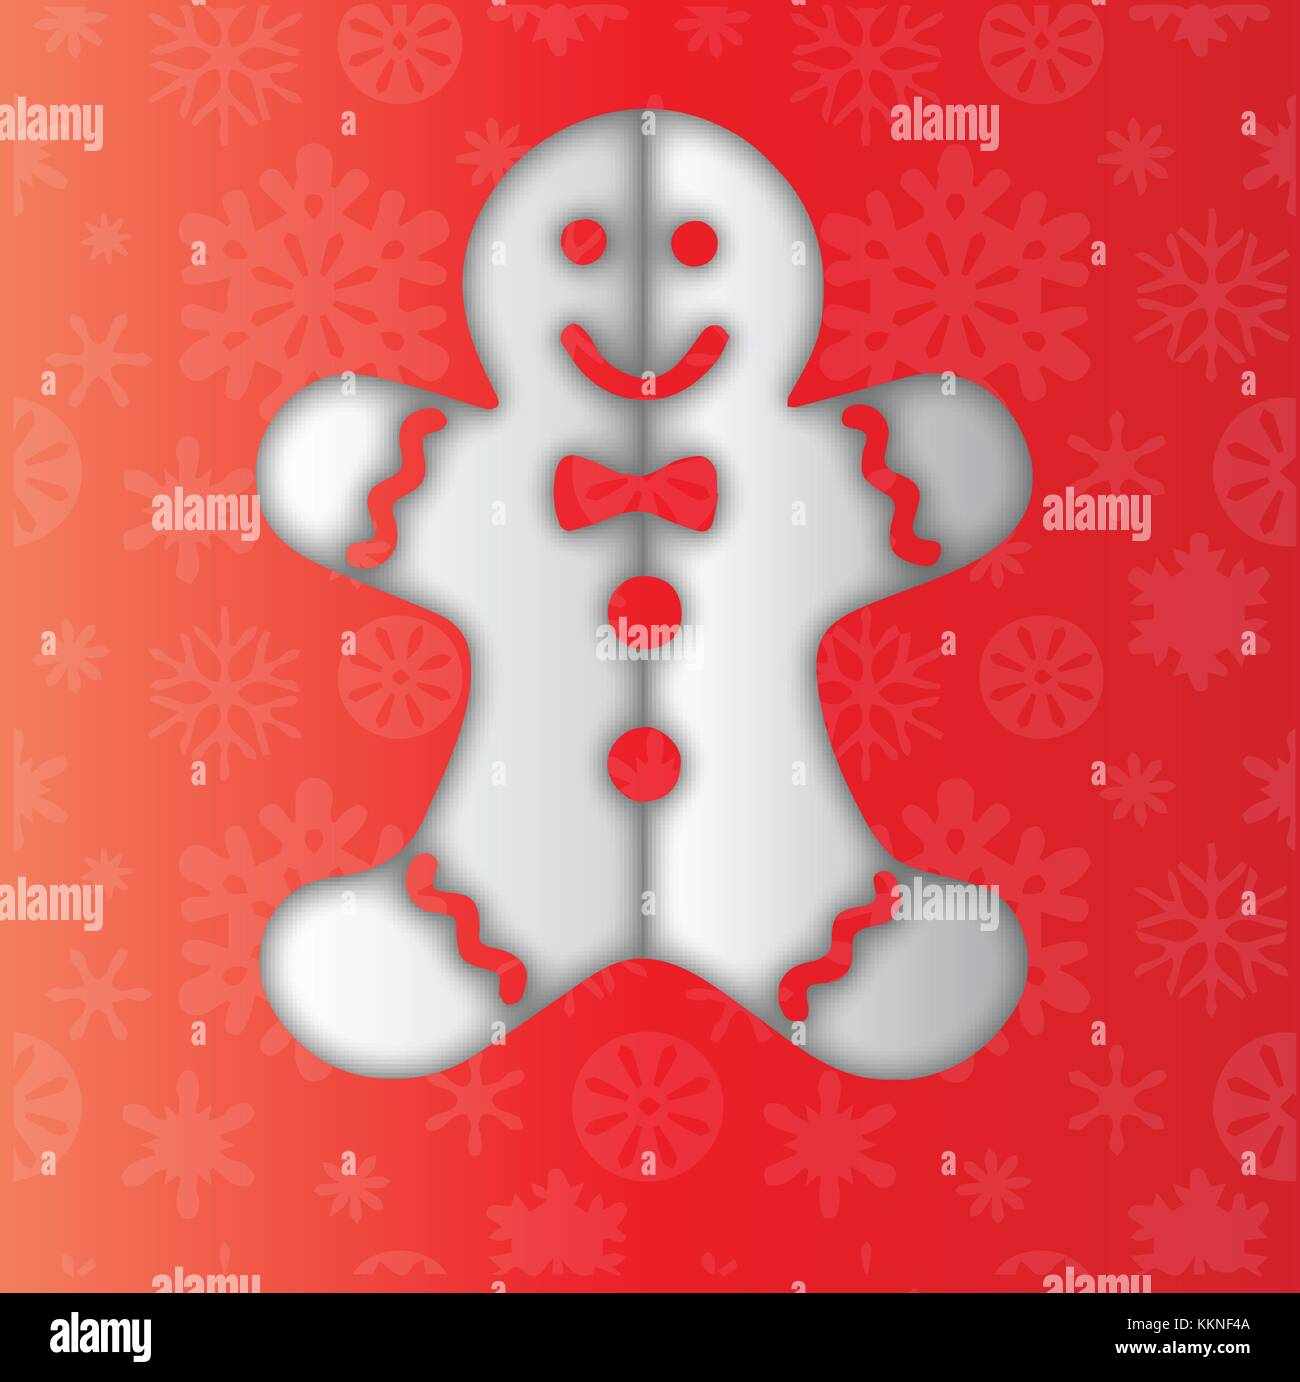 Clipart Gingerbread Man Photo Stock